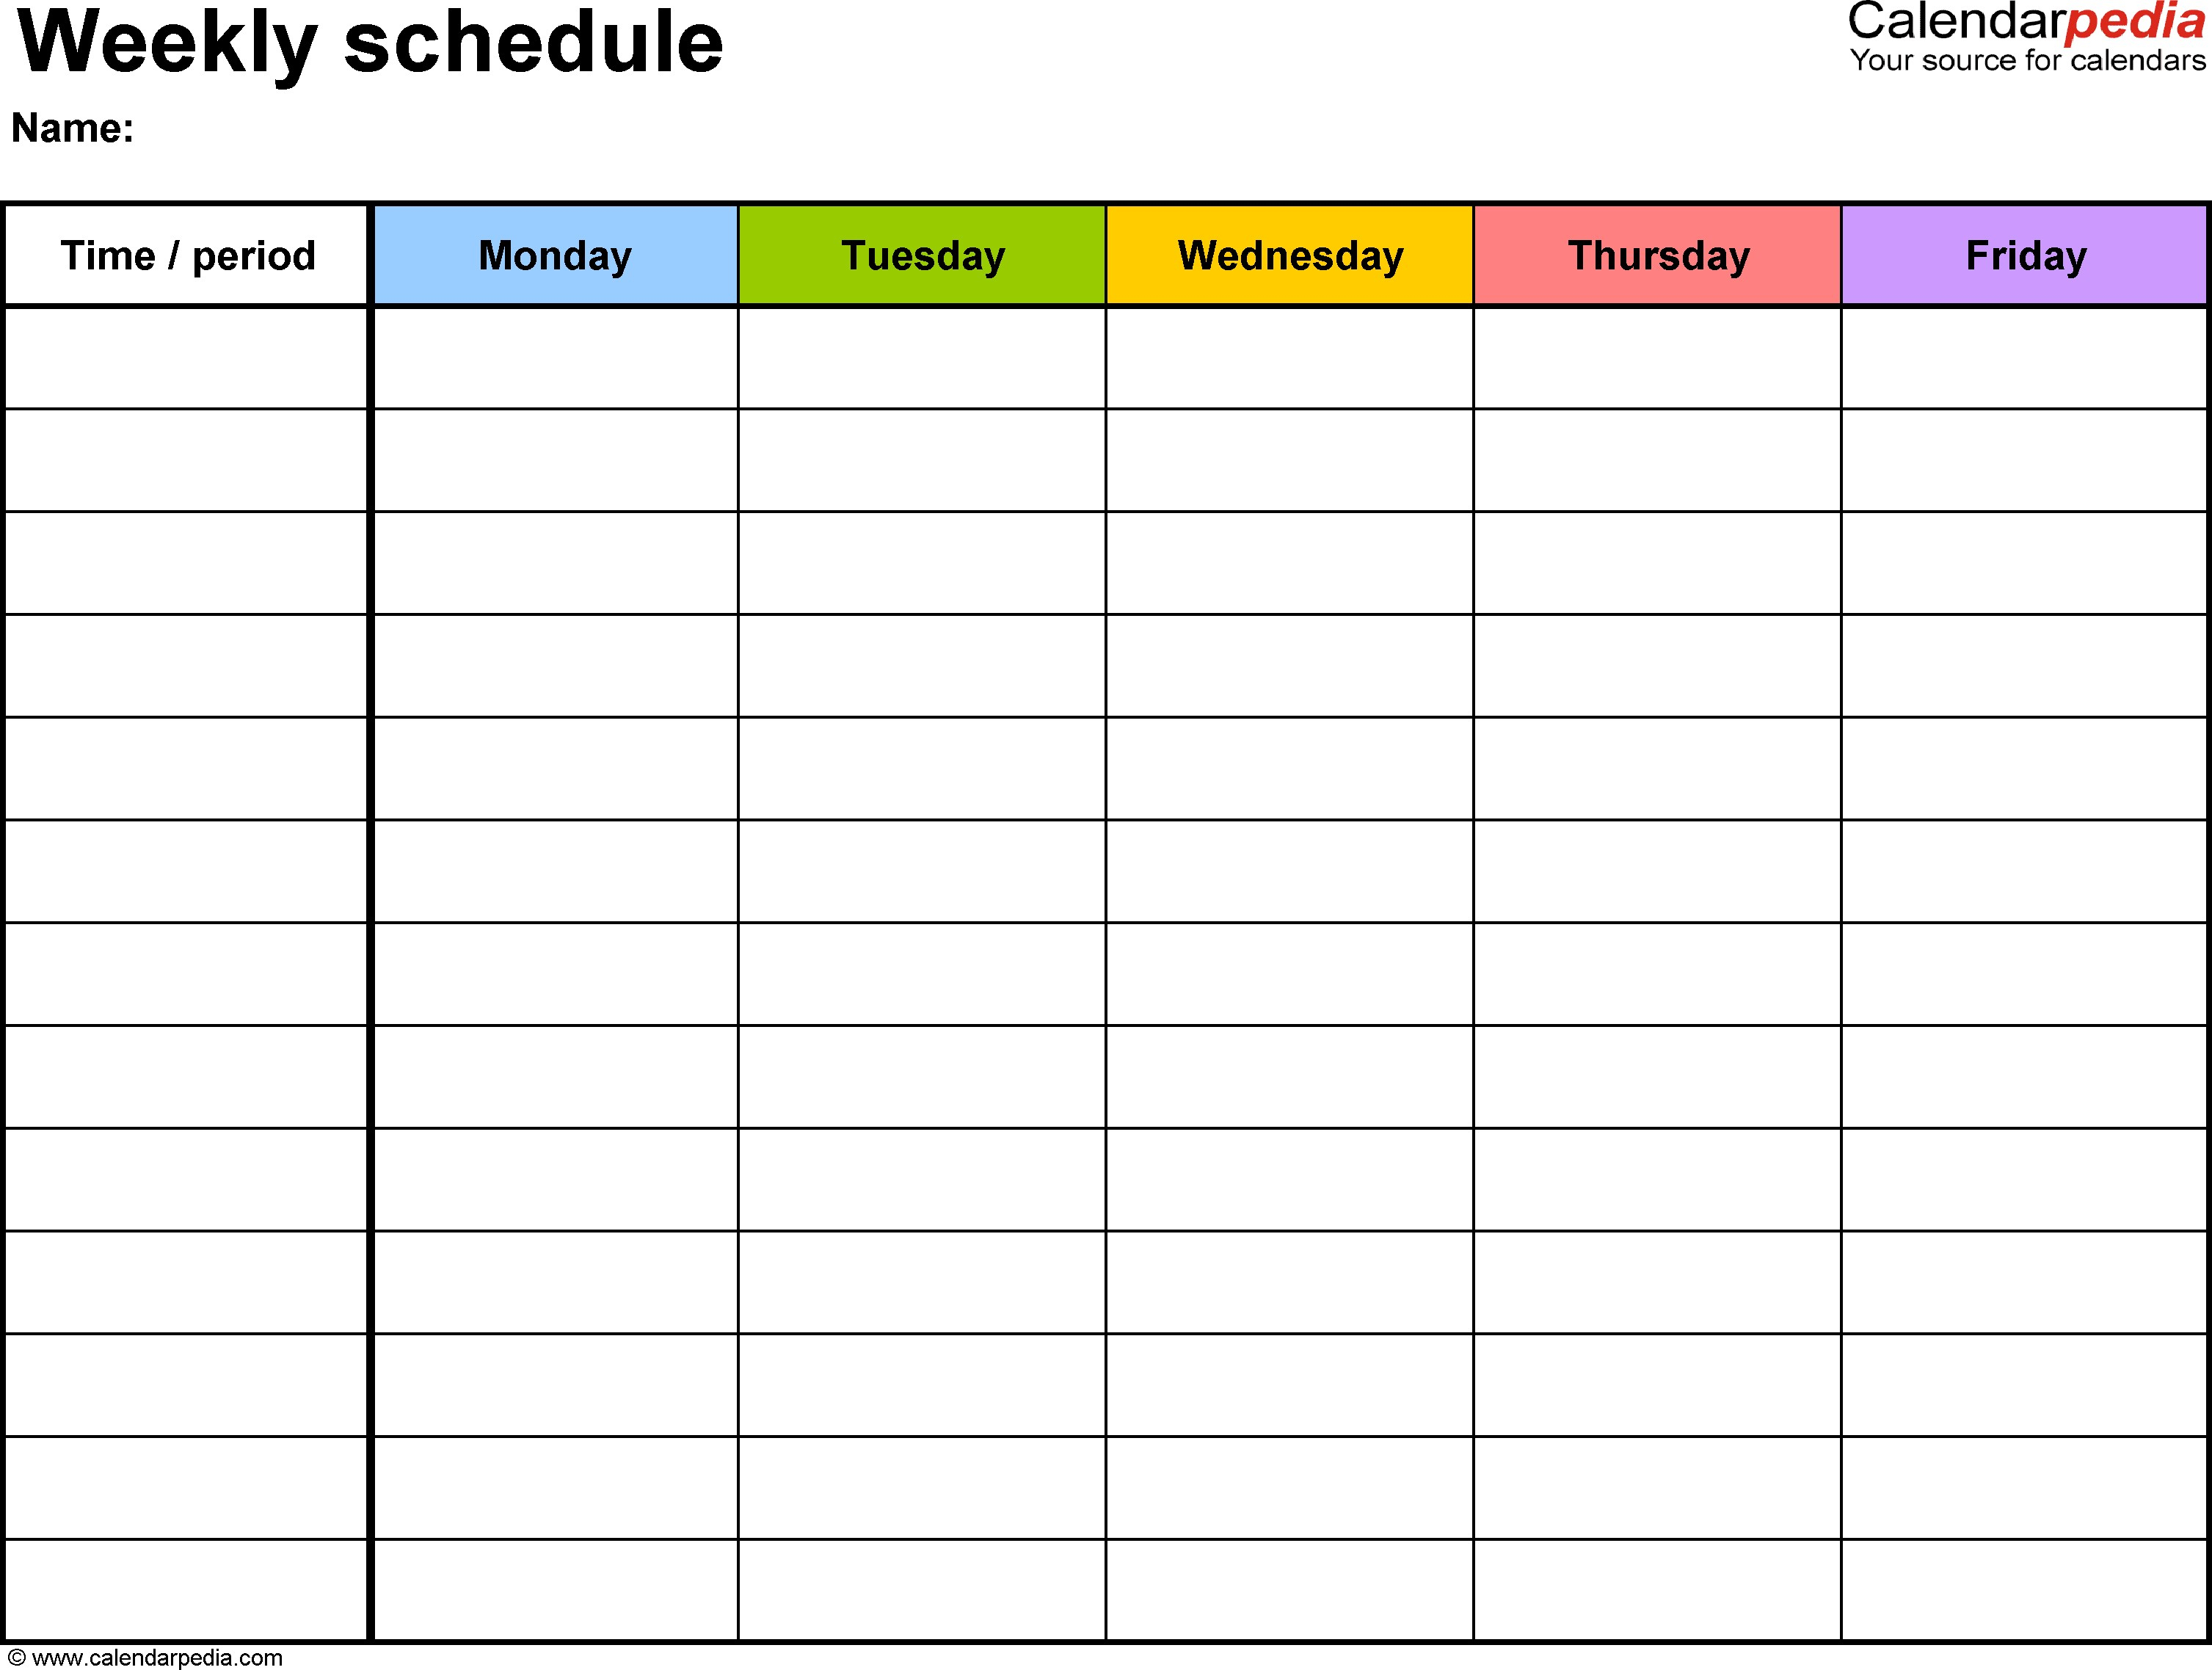 Printable Calendar With Time Slots | Printable Calendar 2019 throughout Blank Calendar With Time Slots